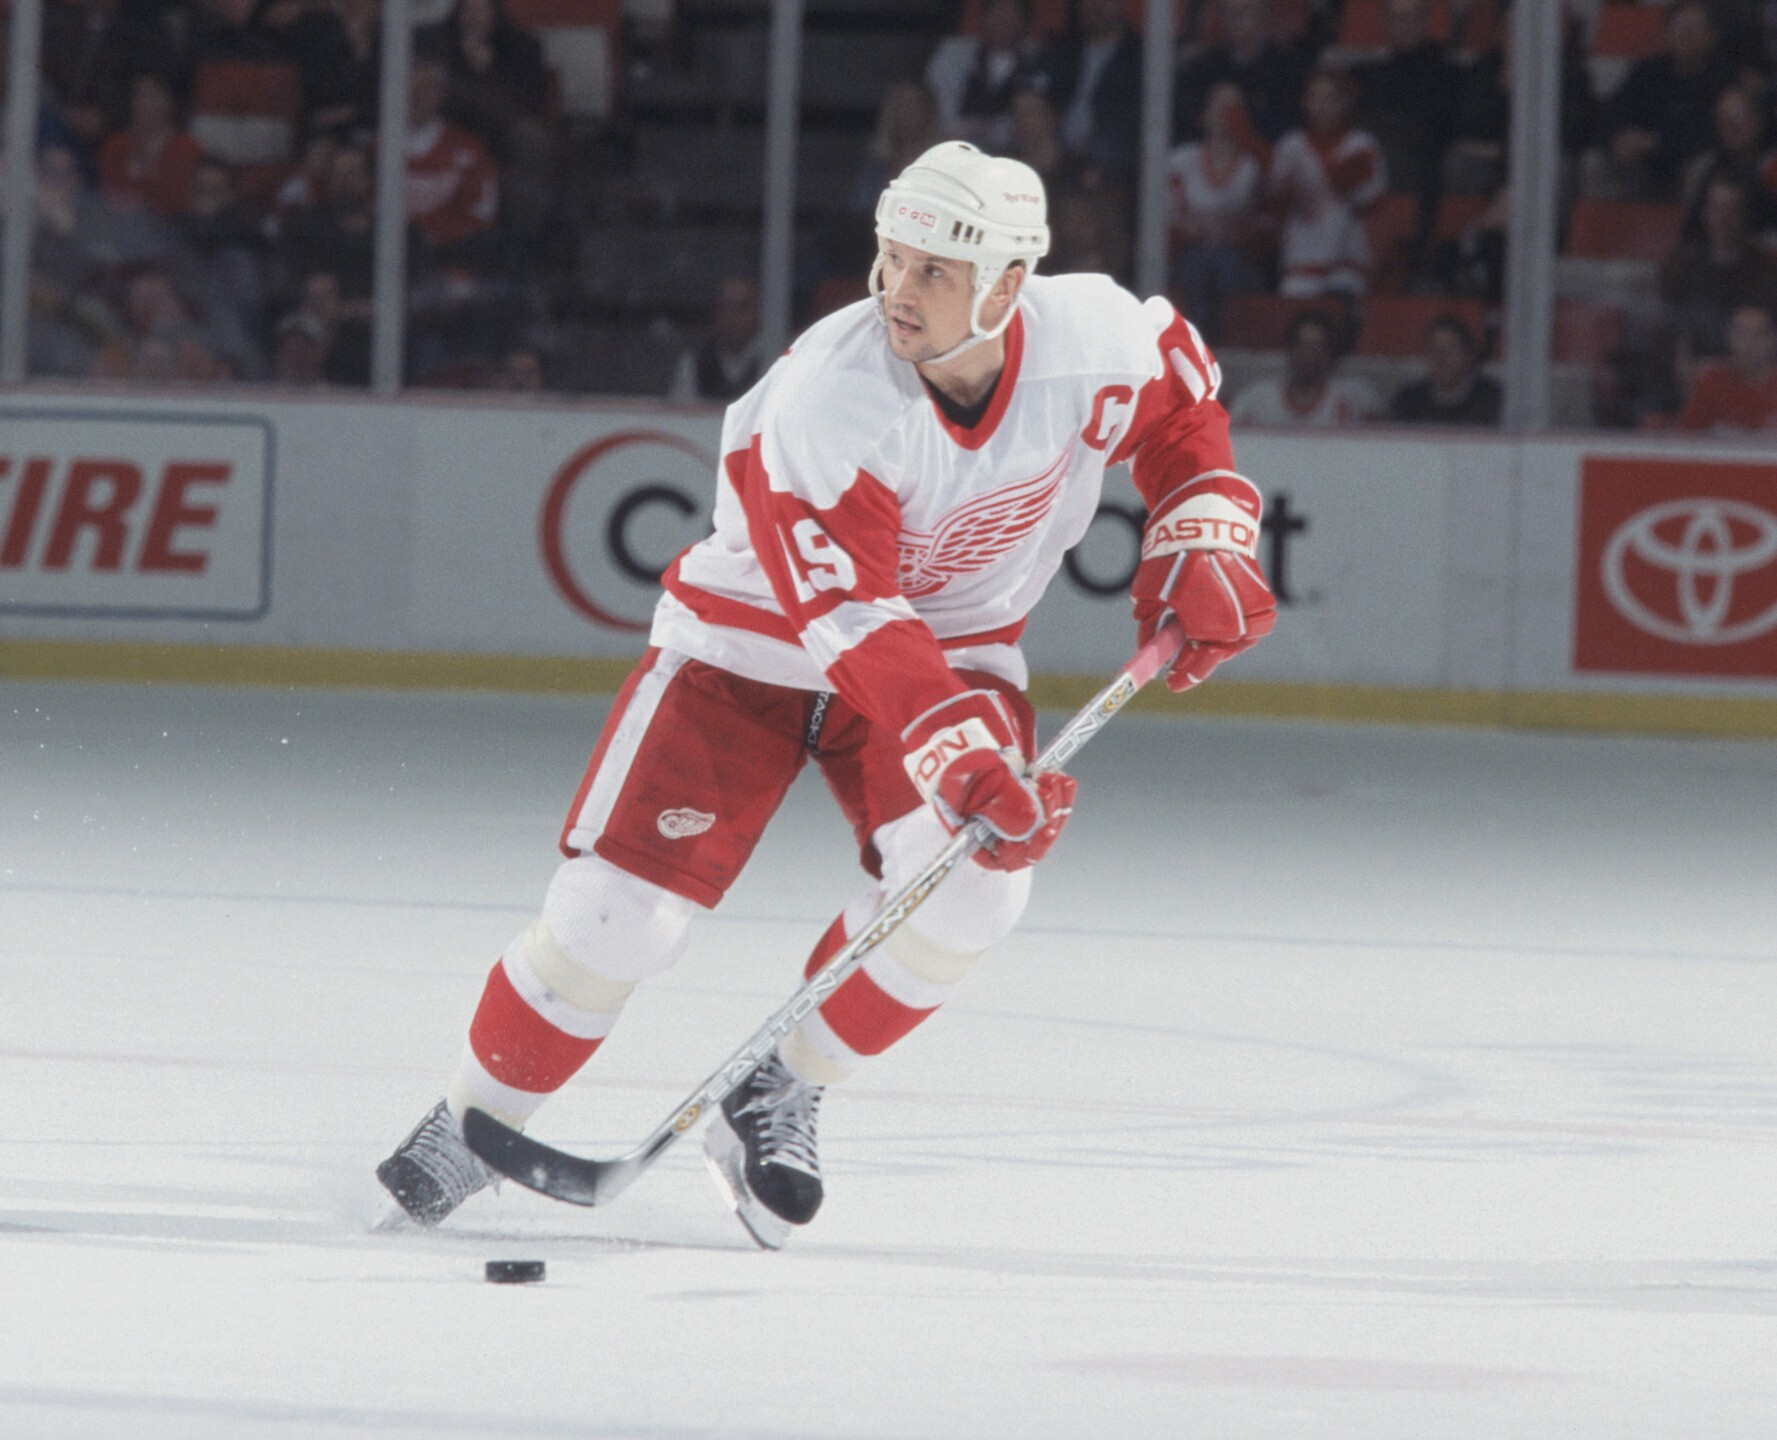 Steve Yzerman skates with the puck